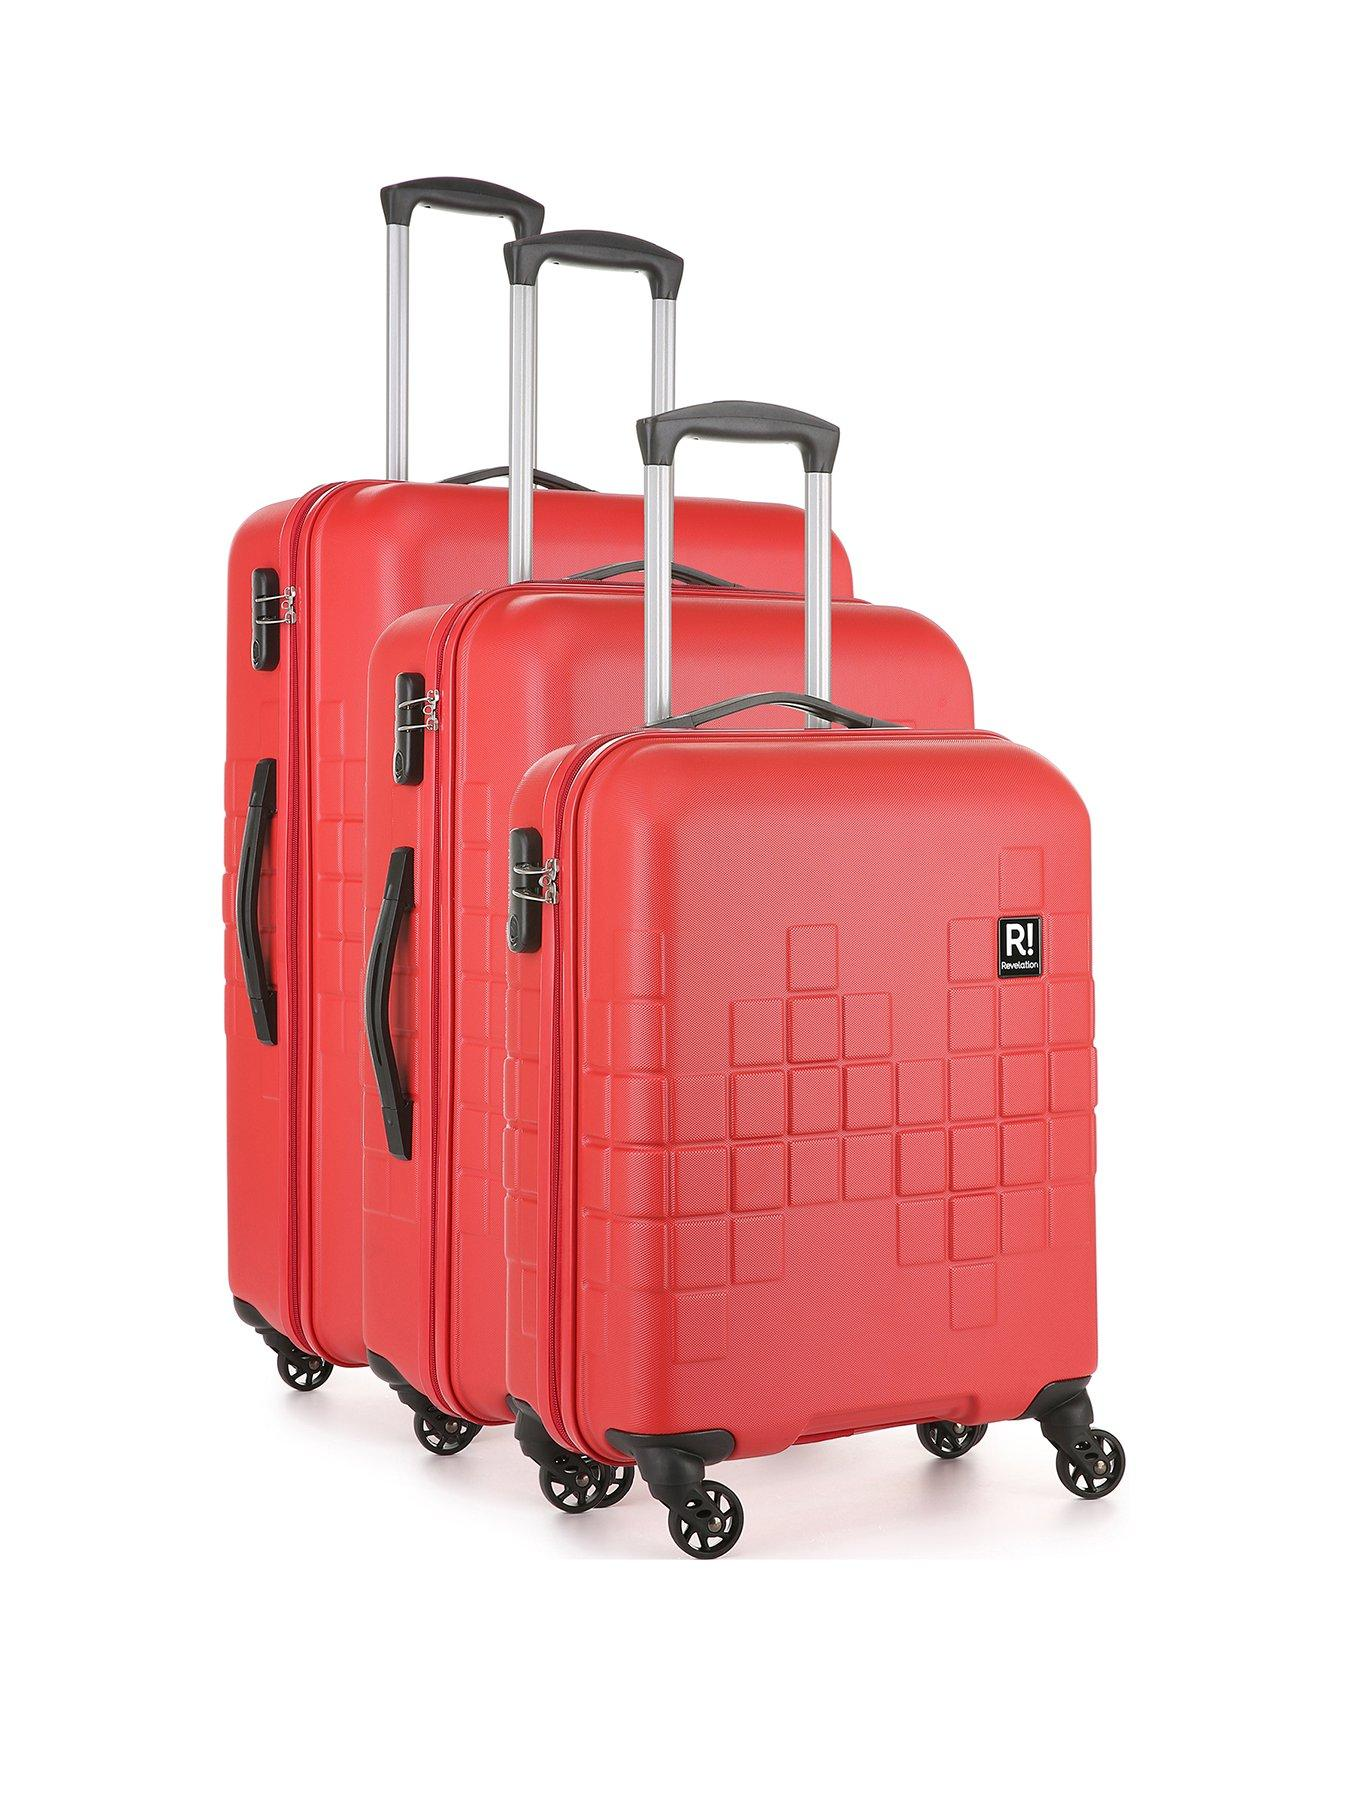 Northern Soul All Over Red Caseskinz Suitcase Cover *SUITCASE NOT INCLUDED*